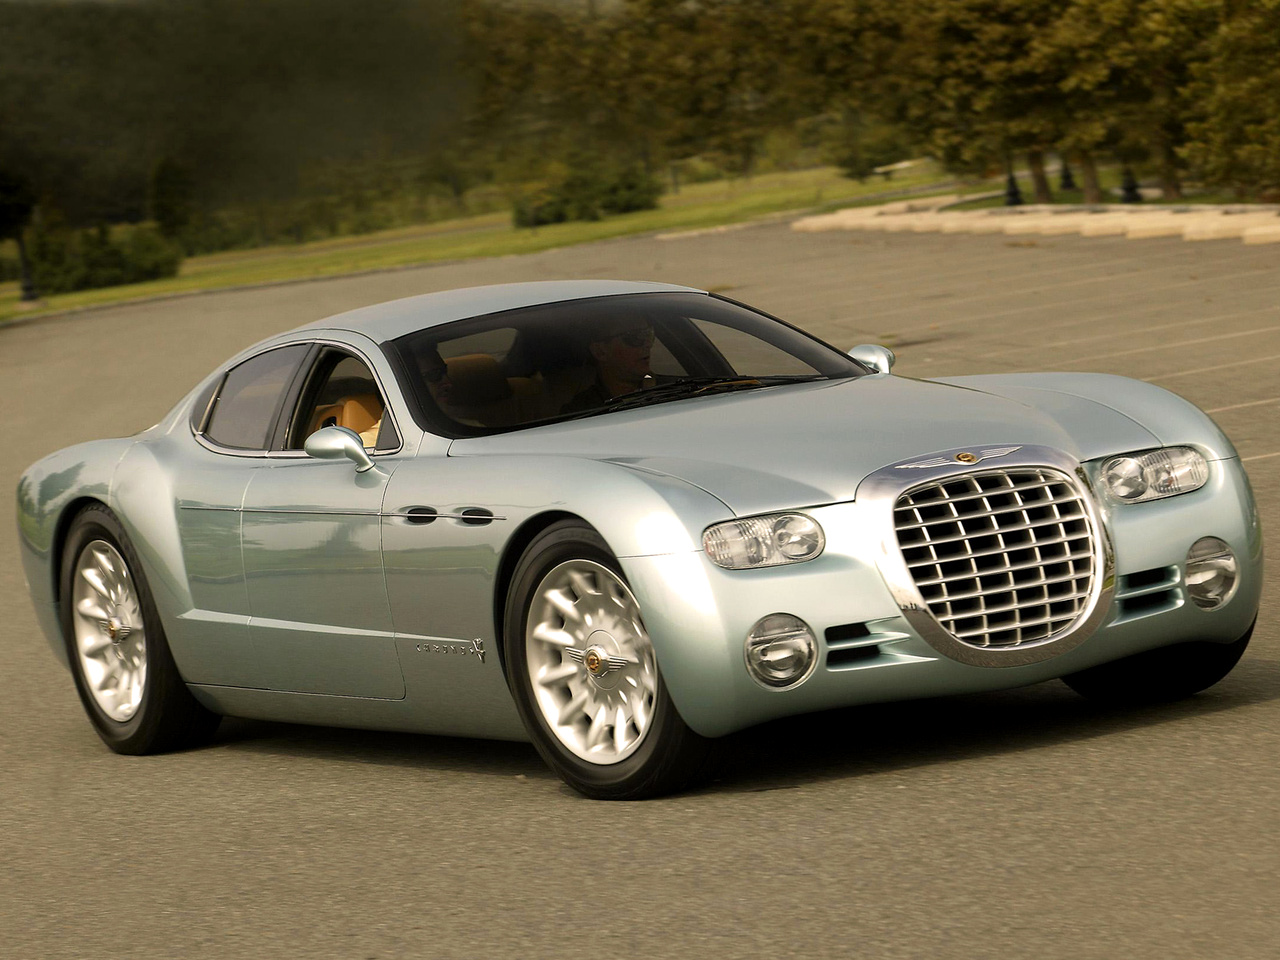 Chrysler car photo - 2